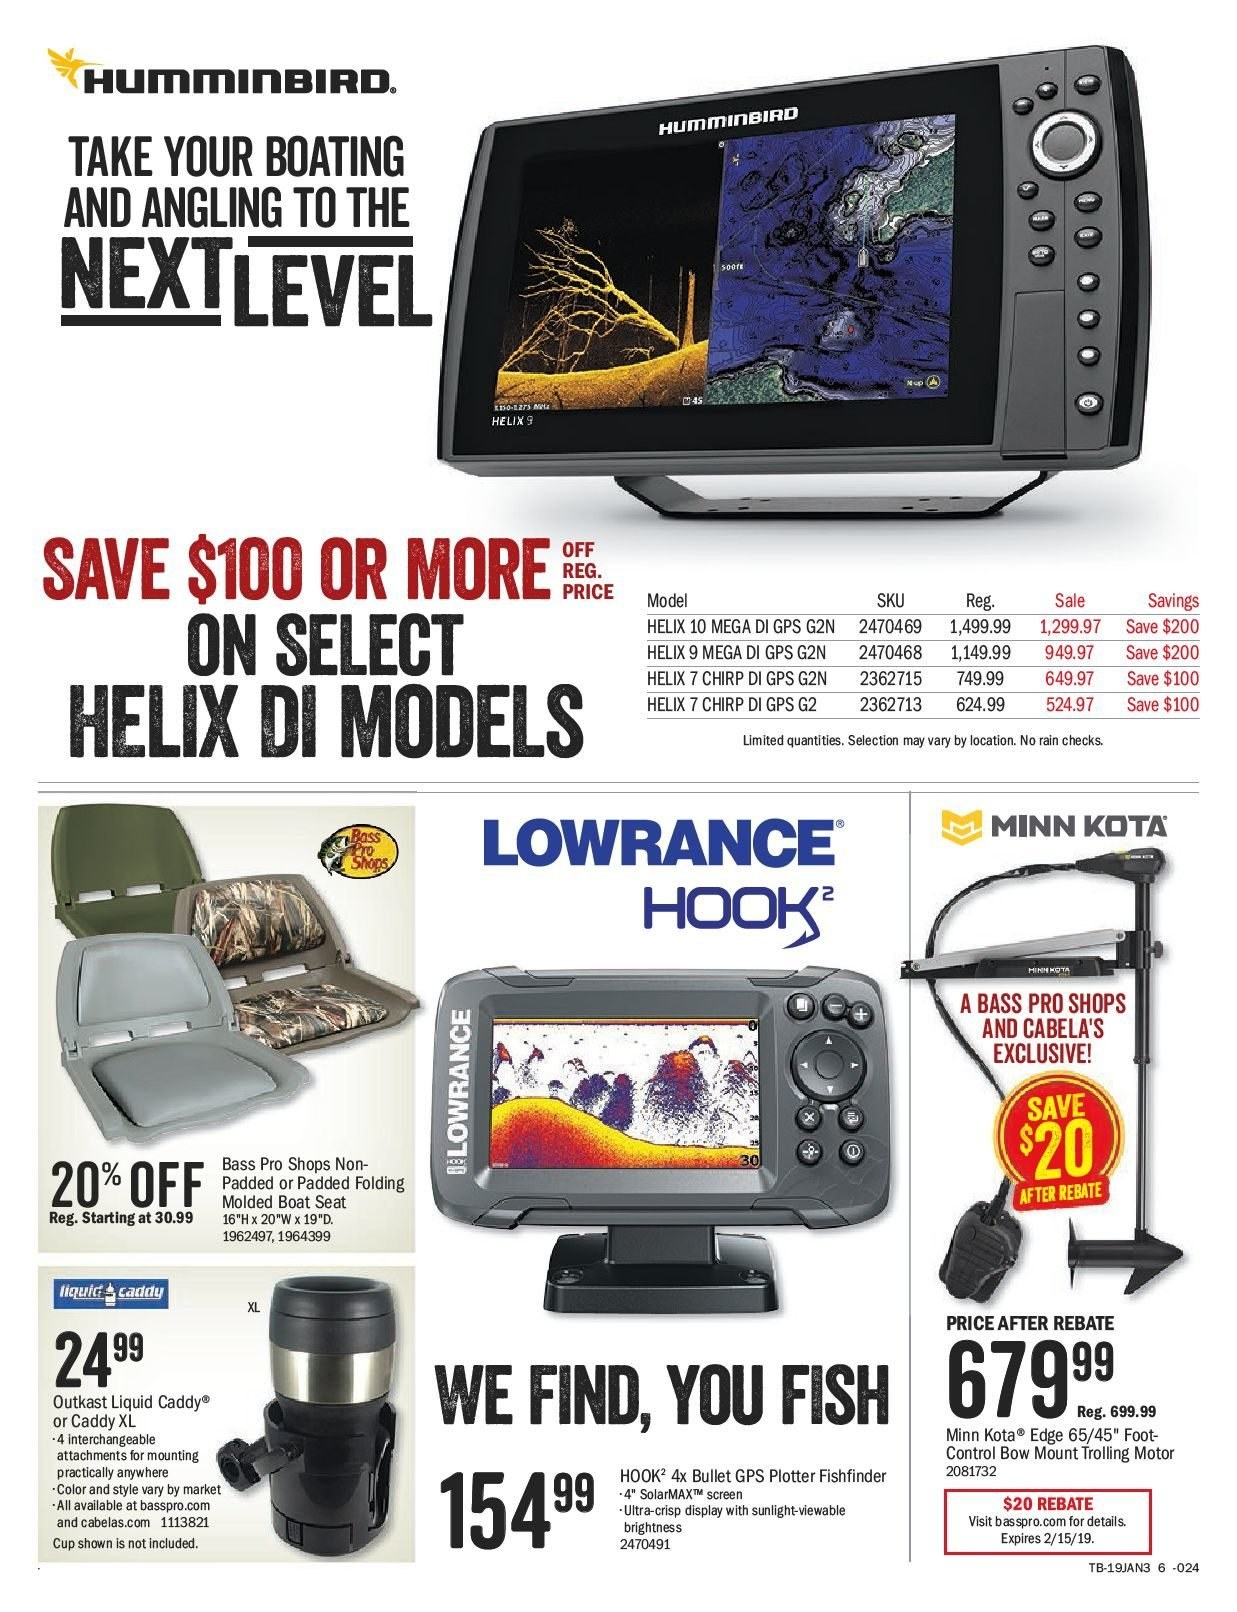 Bass Pro Shops Flyer  - January 25, 2019 - February 14, 2019. Page 6.